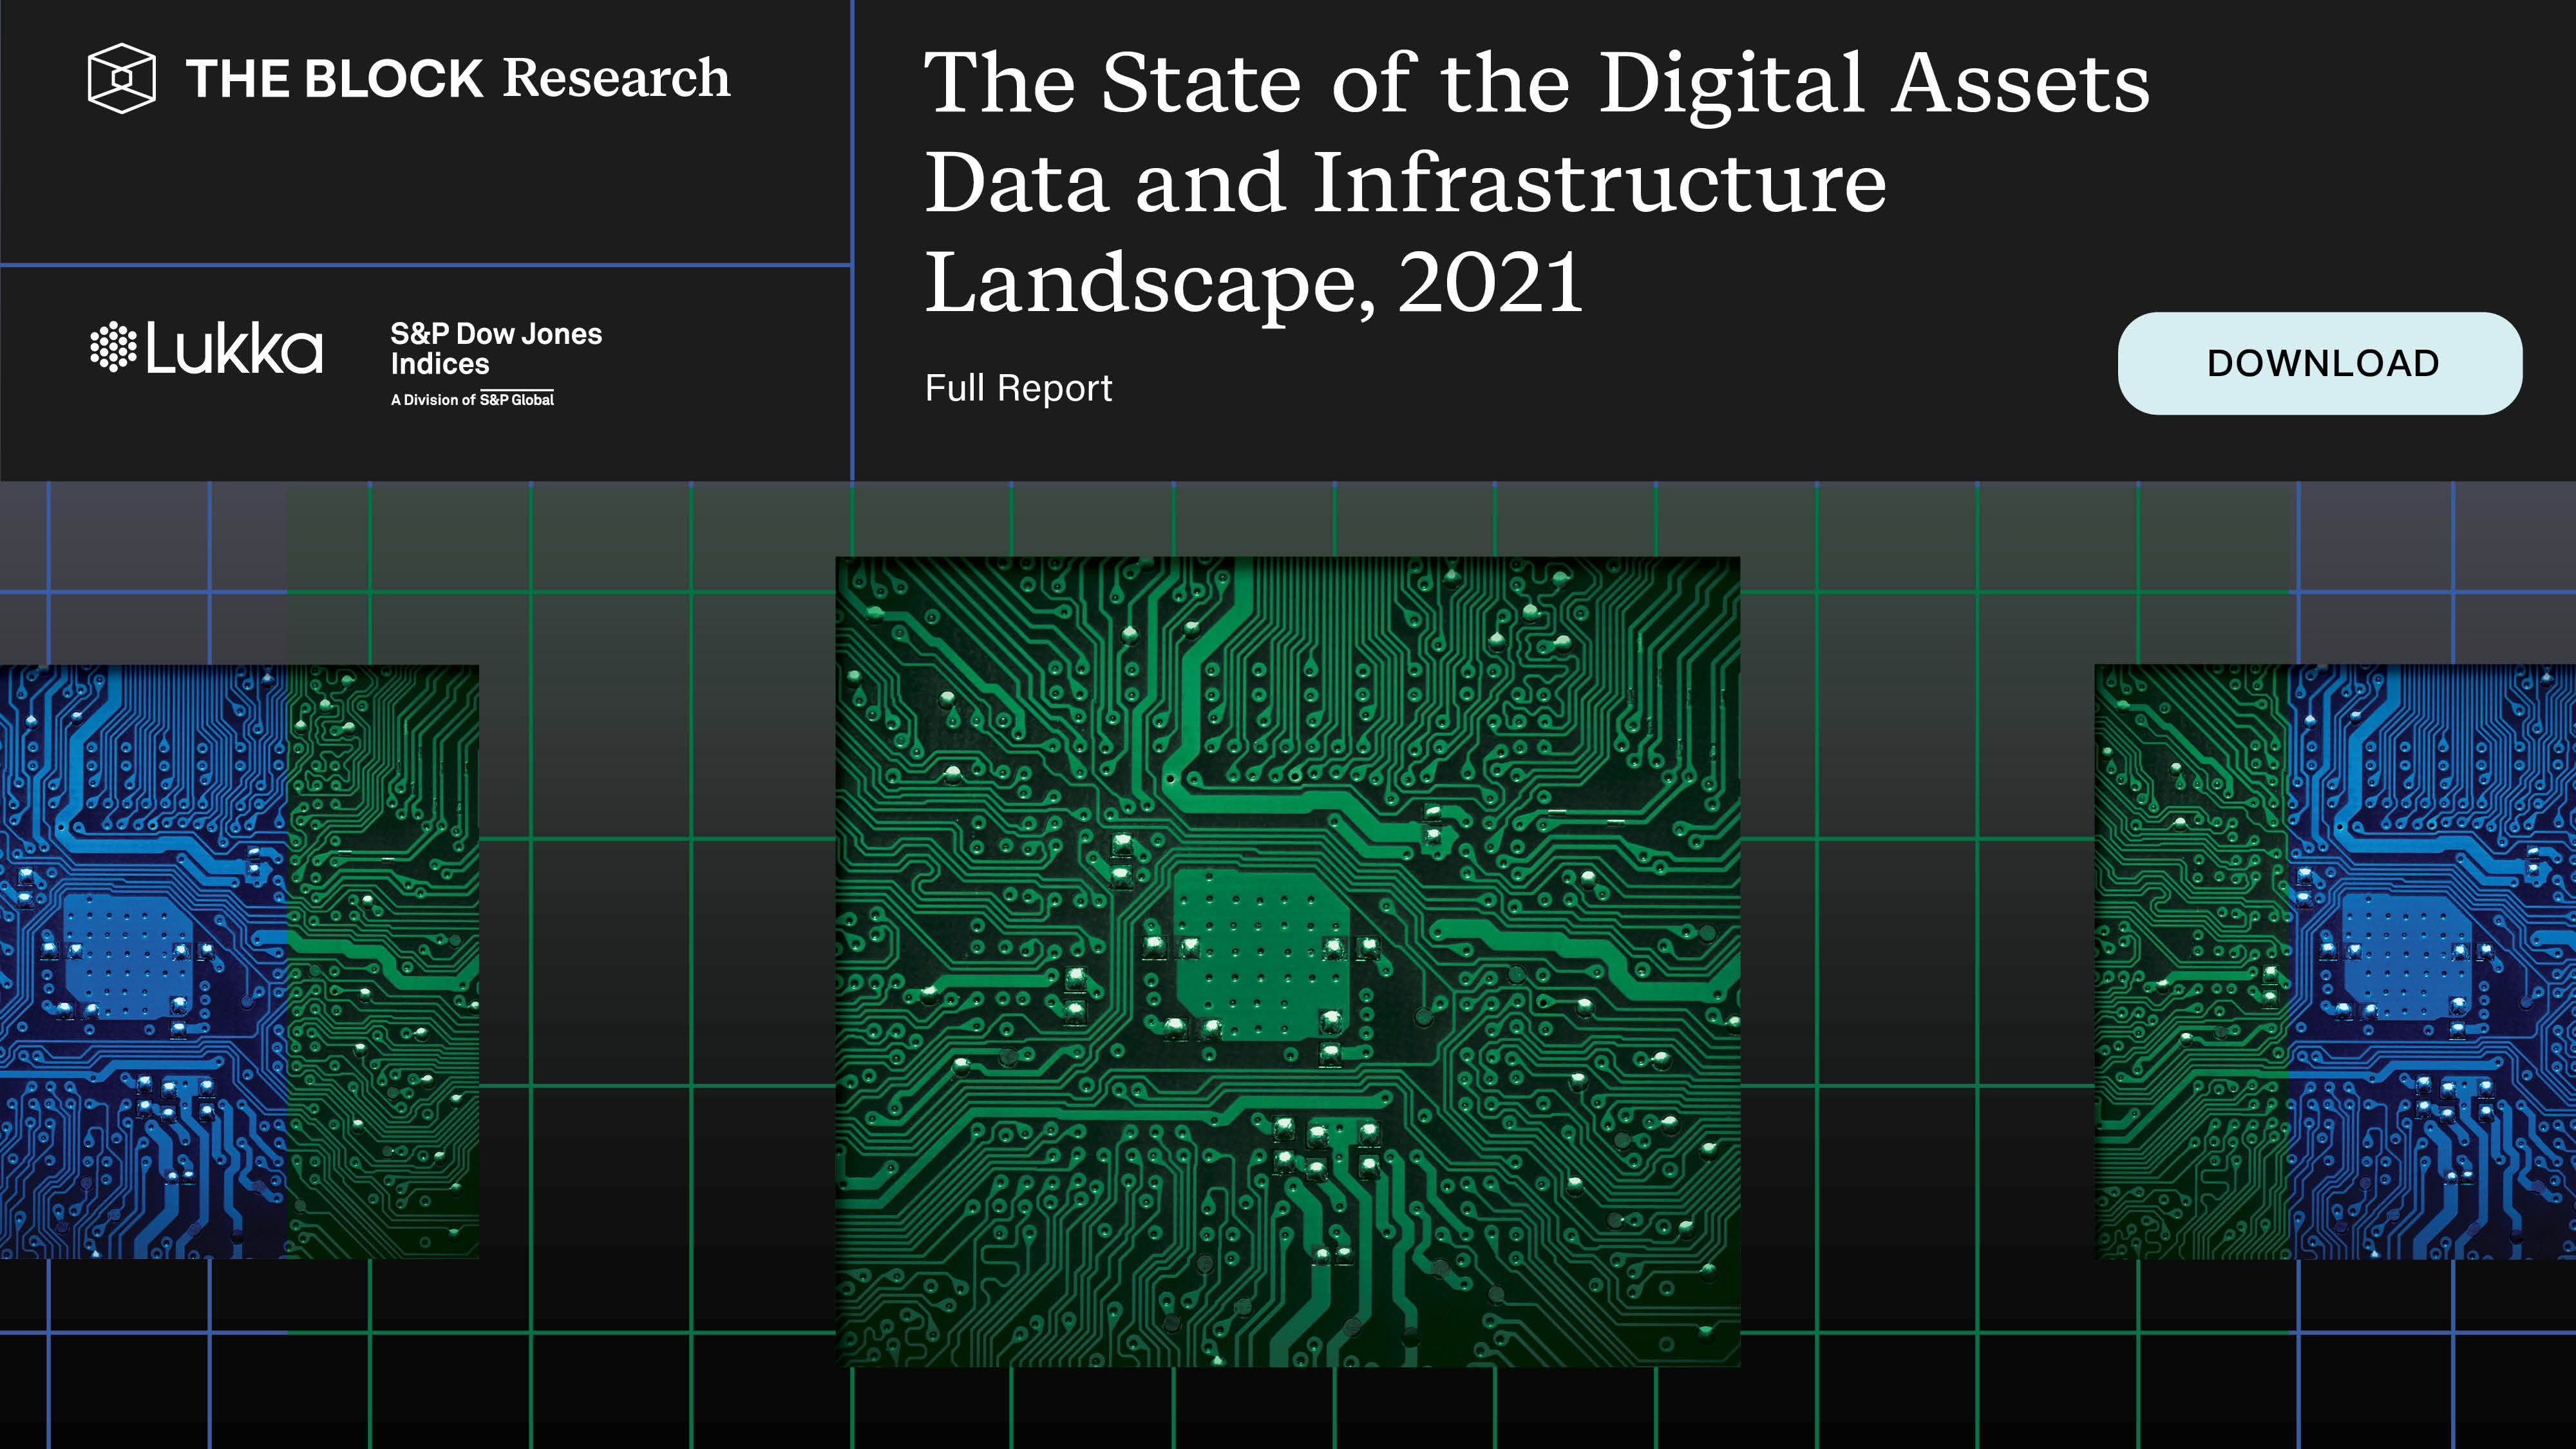 The State of the Digital Assets Data and Infrastructure Landscape, 2021